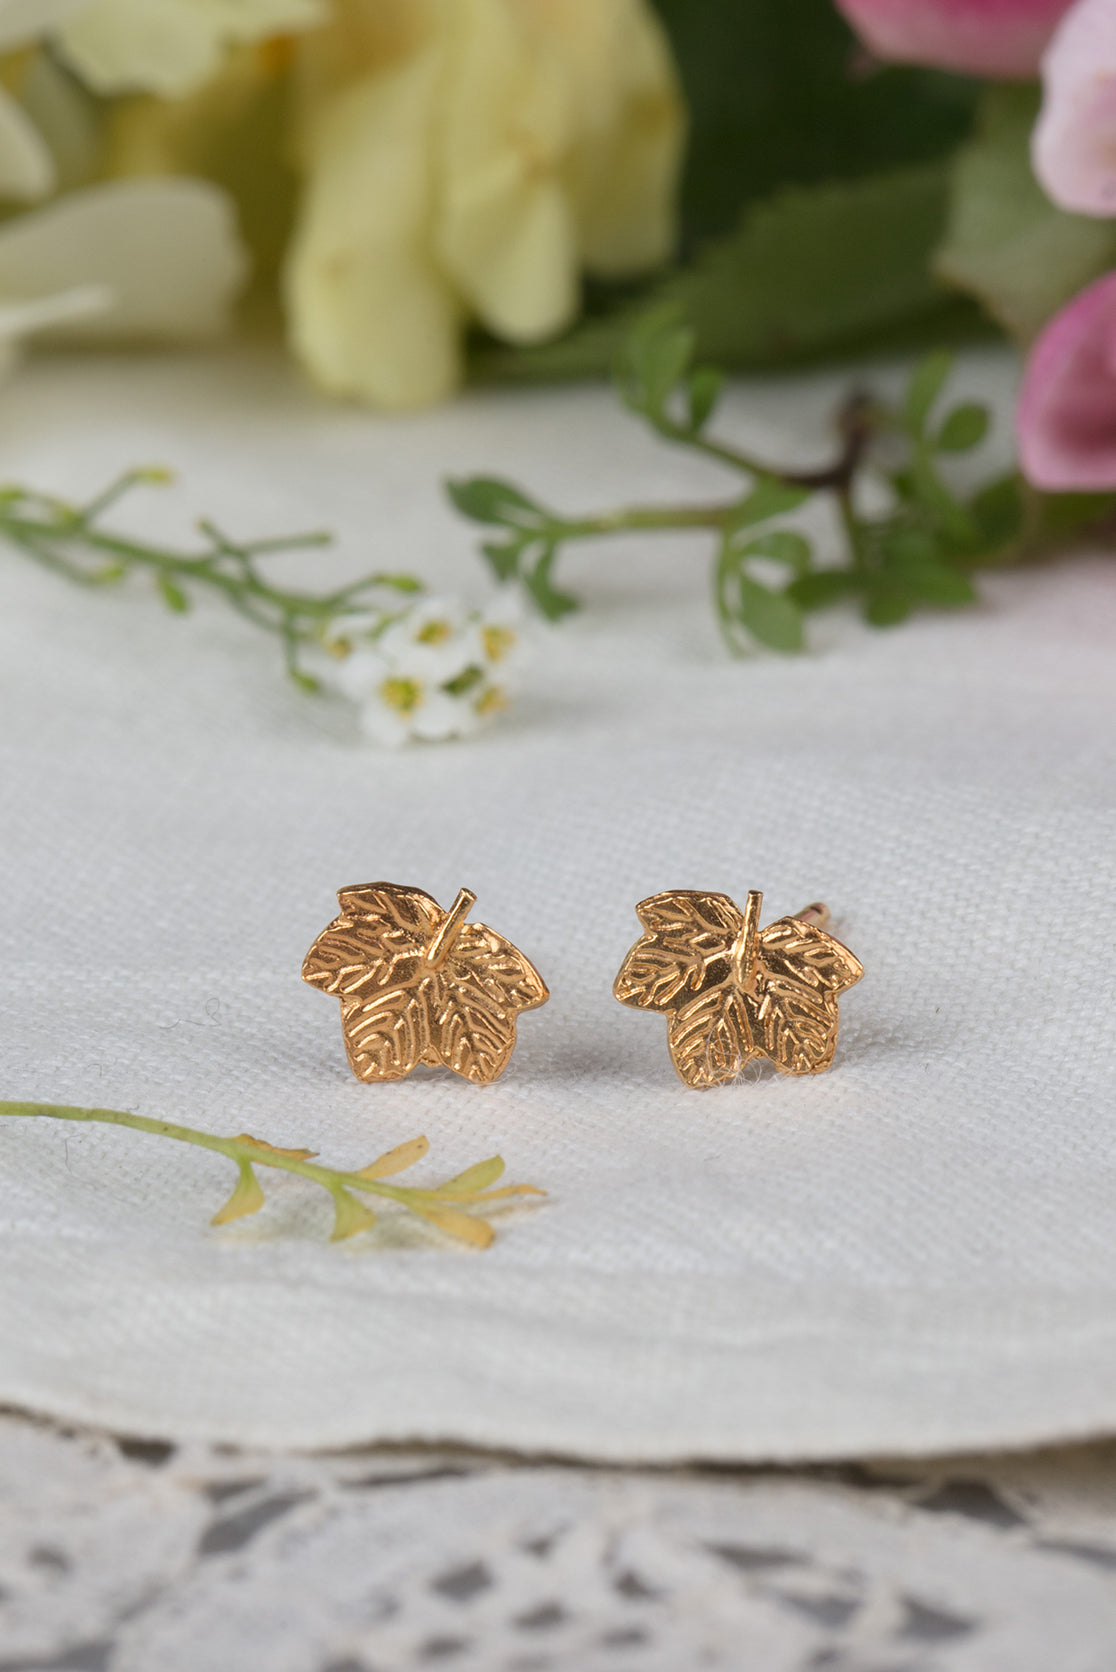 sycamore leaf earrings - small studs in 22ct gold plate